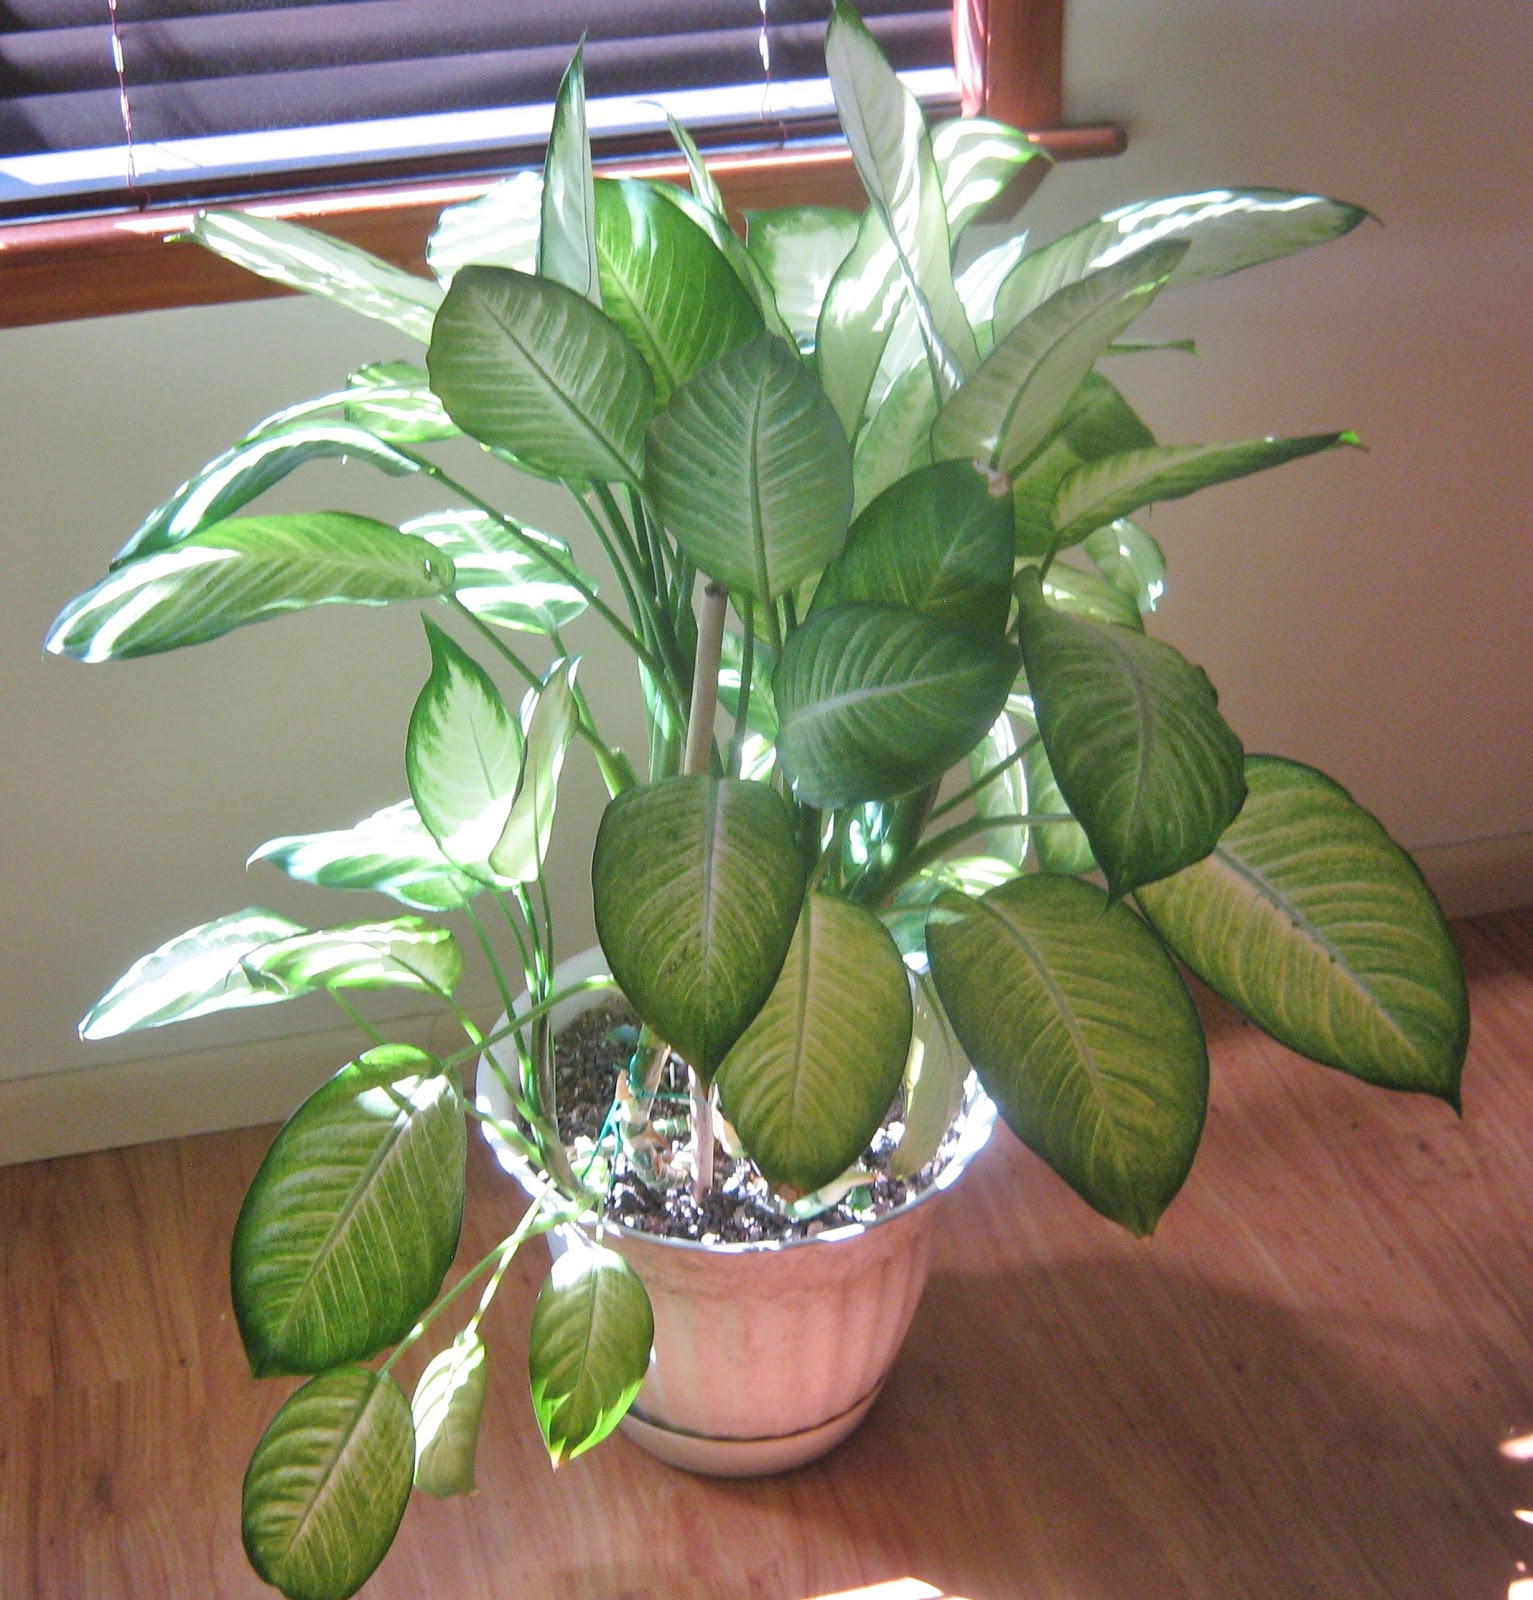 watering house plants - House Plant Identification Guide By Picture